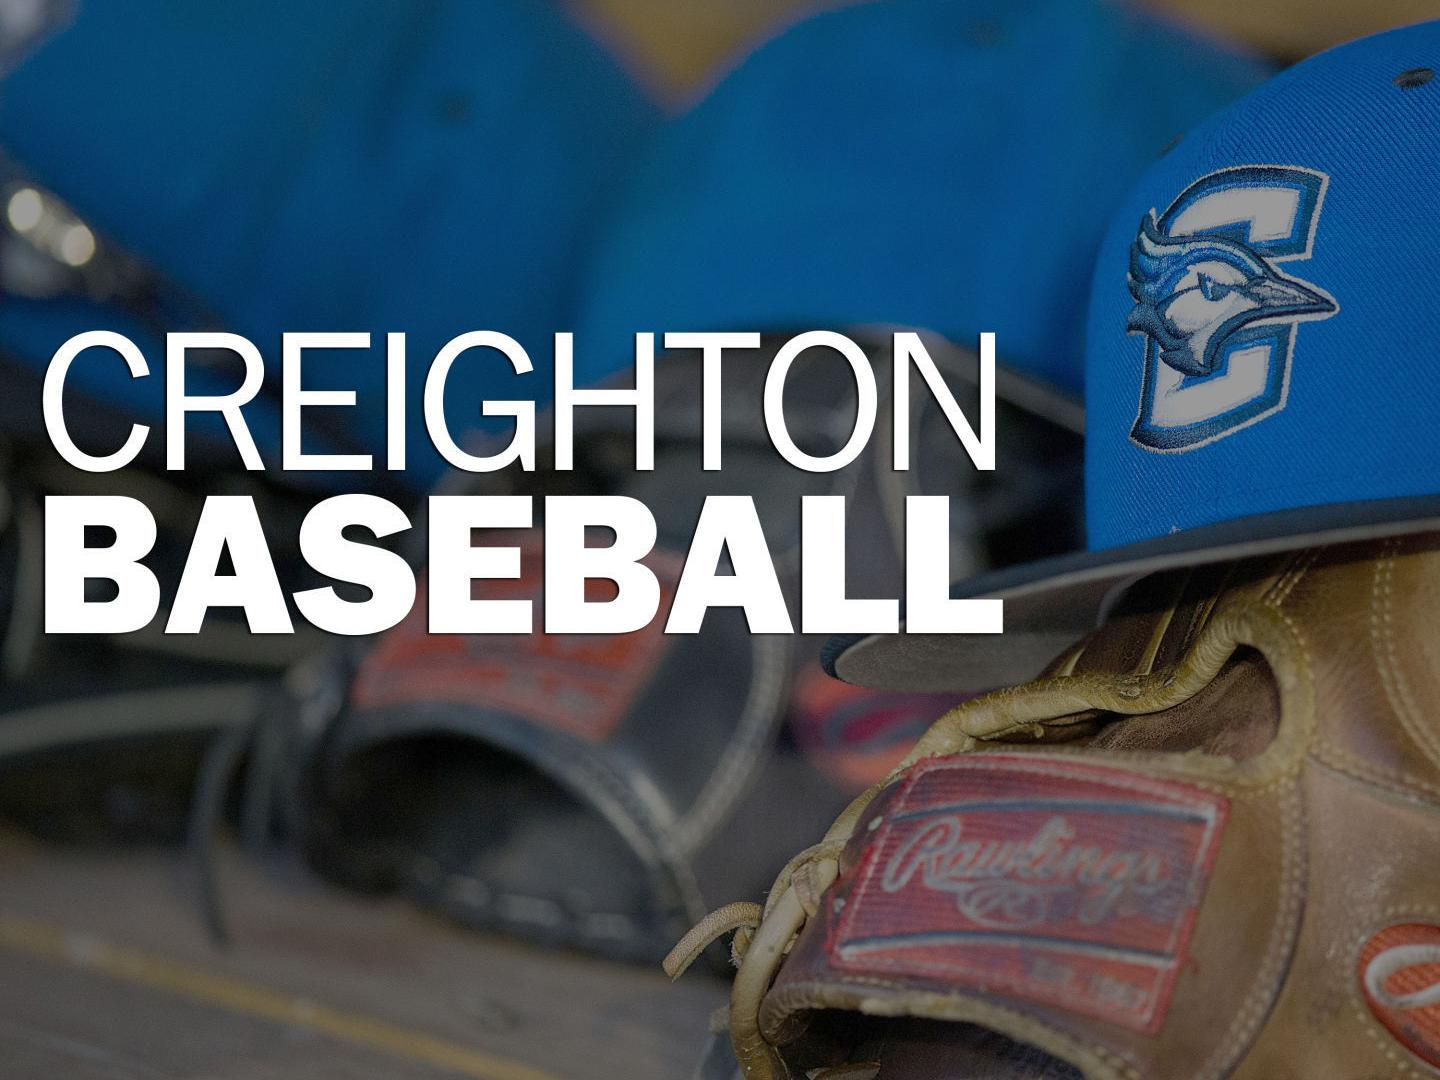 Creighton moves to 2-0 with offensive outburst against Arkansas-Little Rock